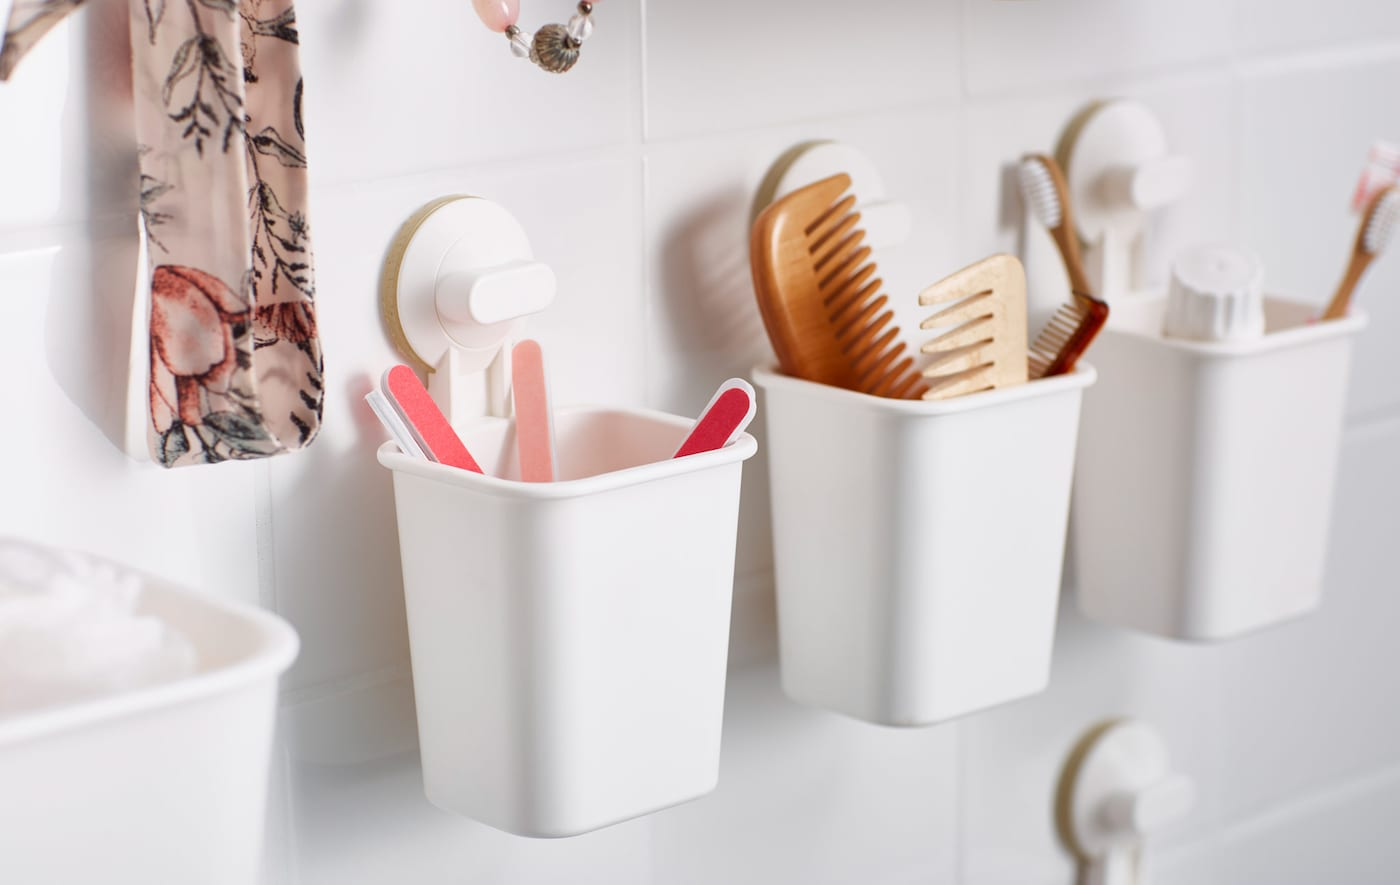 Small plastic baskets, attached to the bathroom wall with suction cups, and holding toiletries and accessories.